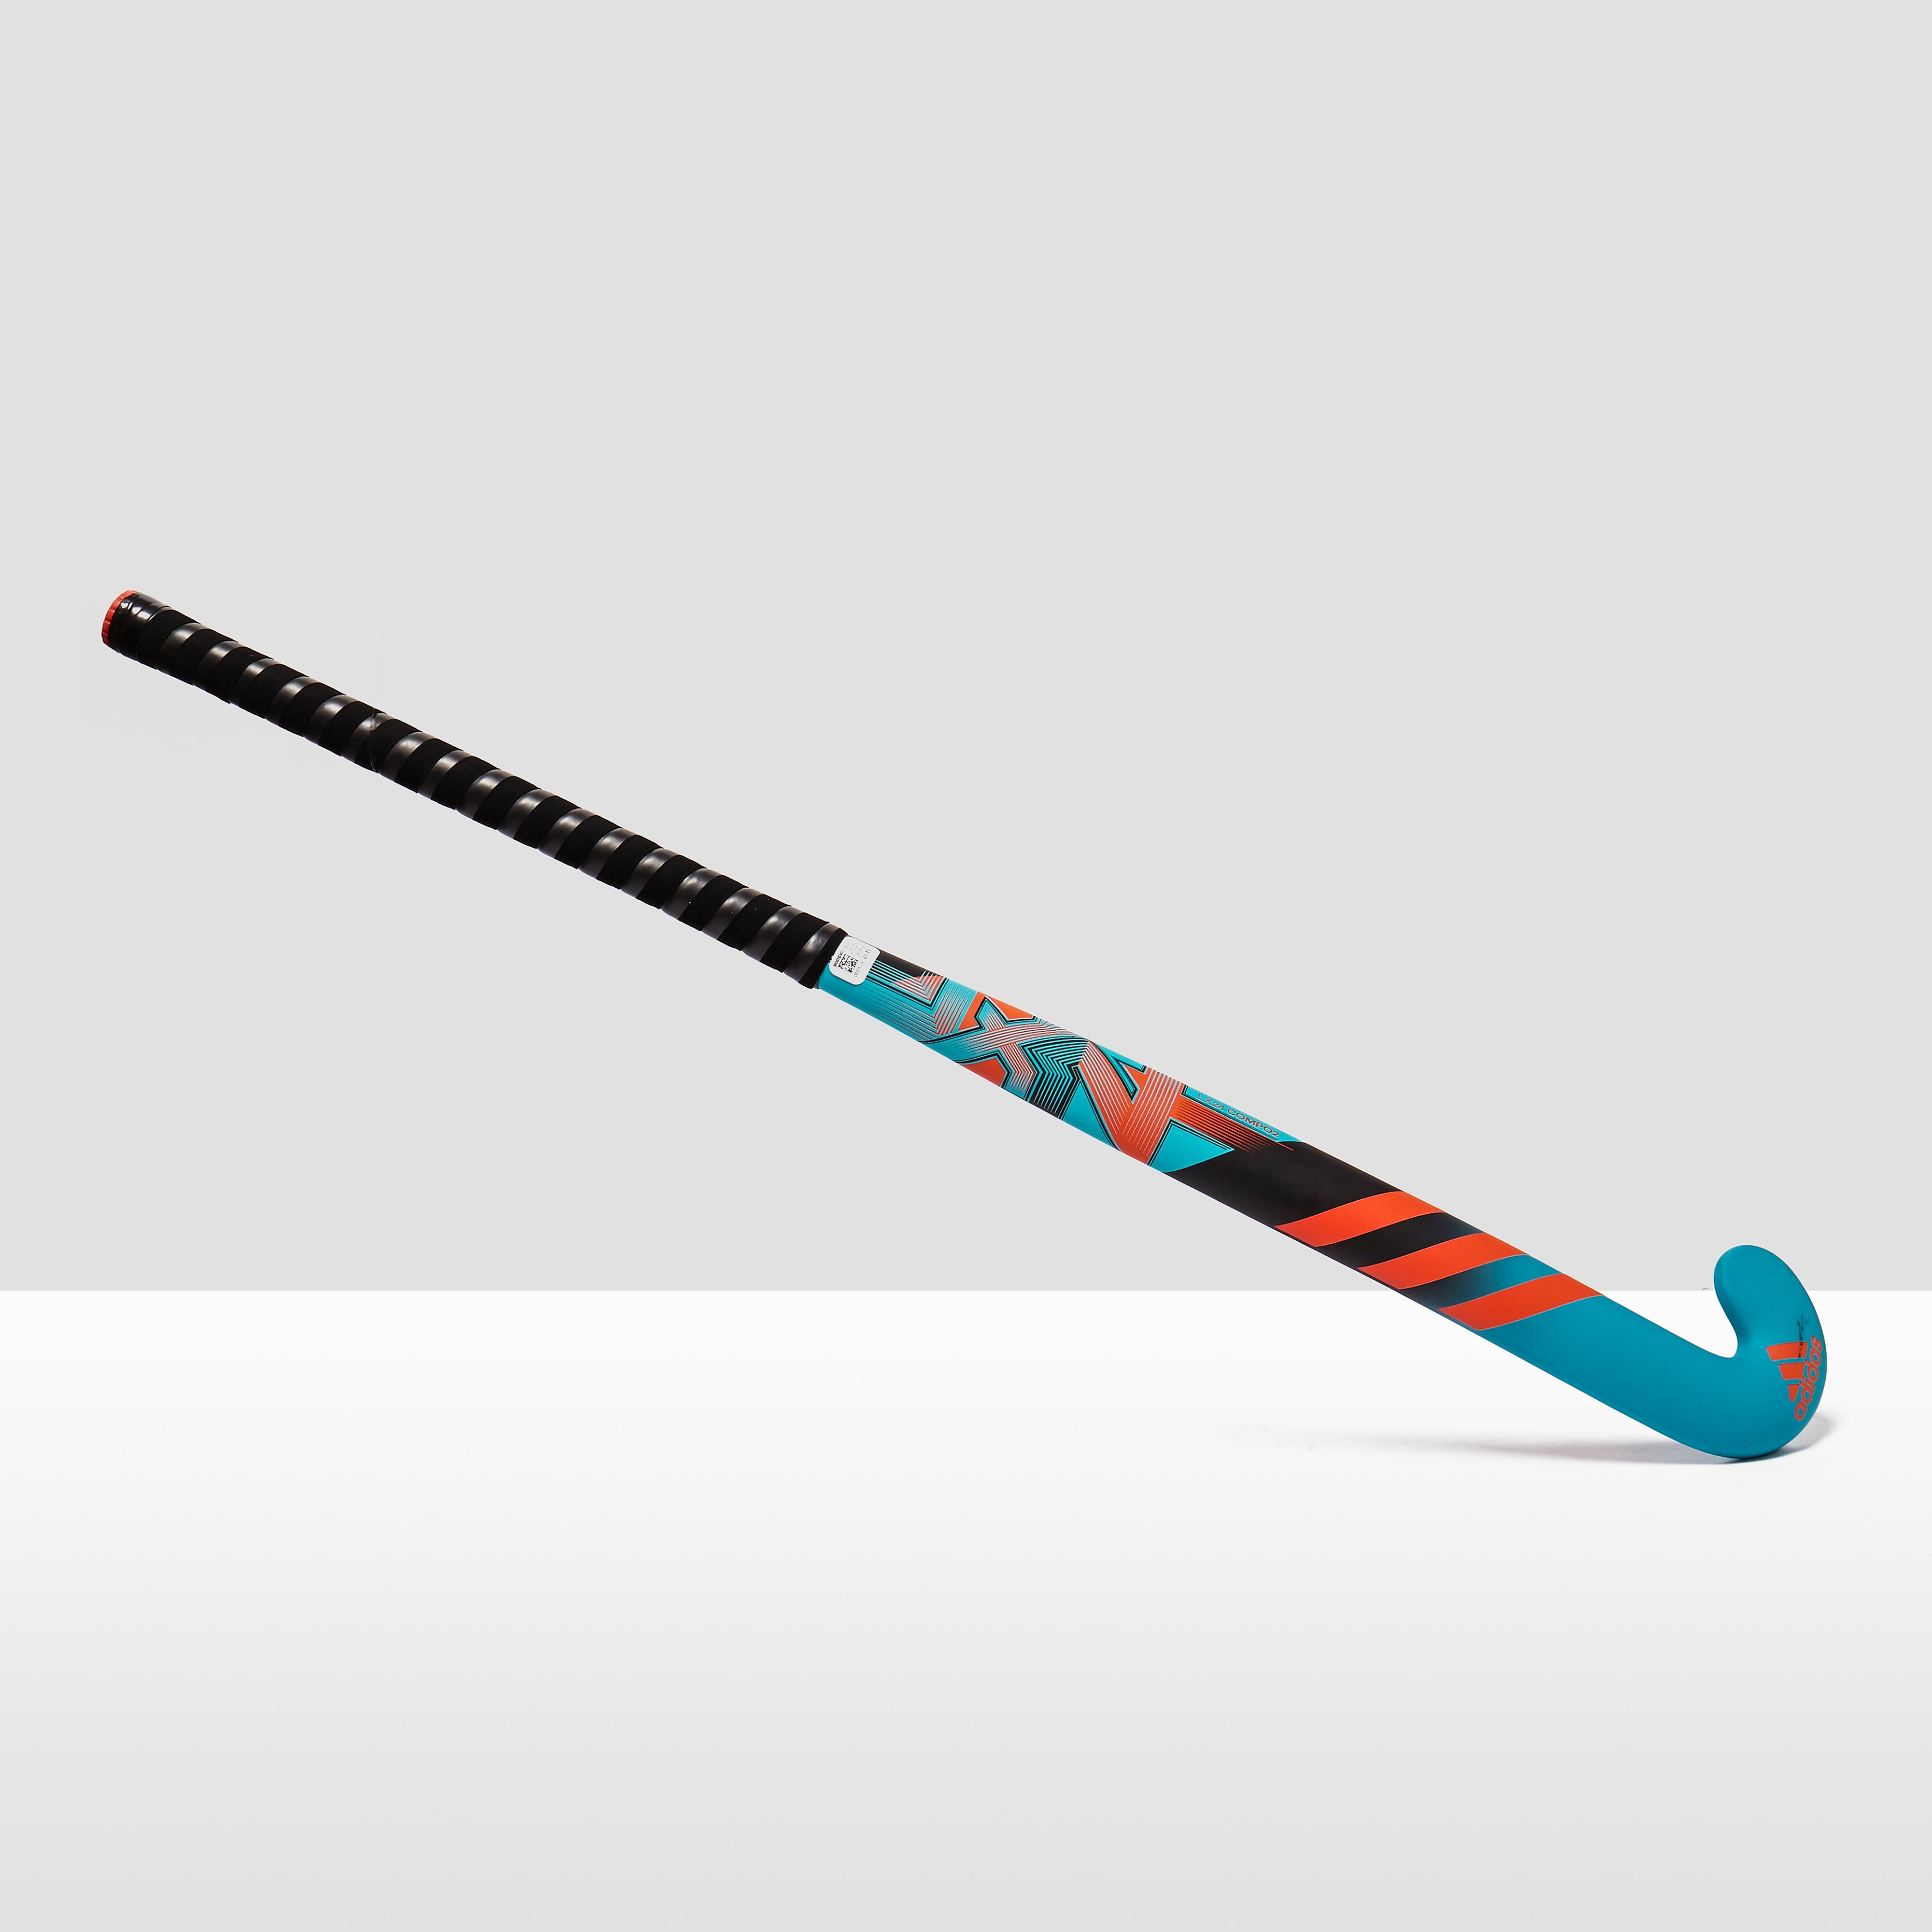 adidas LX24 Compo 2 hockey stick